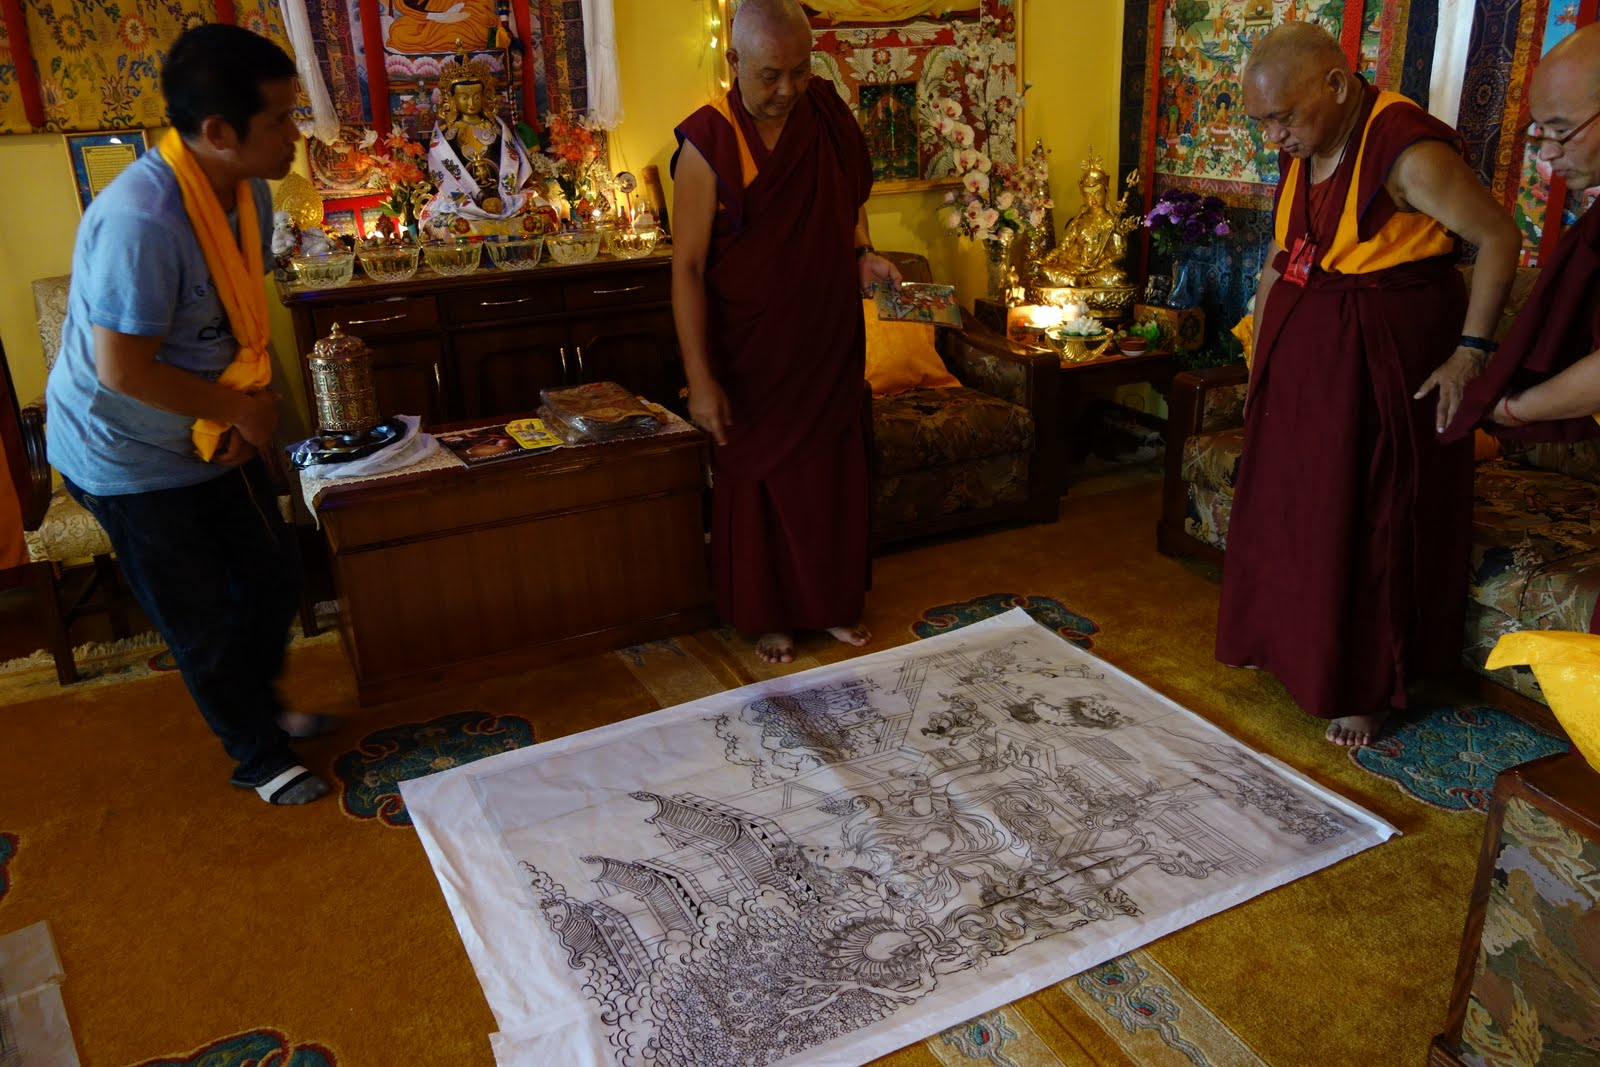 Rinpoche checking the art of thangkas he is having done: The Eight Fearless Taras and The Twenty-one Taras. Kopan Monastery, August 10, 2013 Photo: Ven. Roger Kunsang.